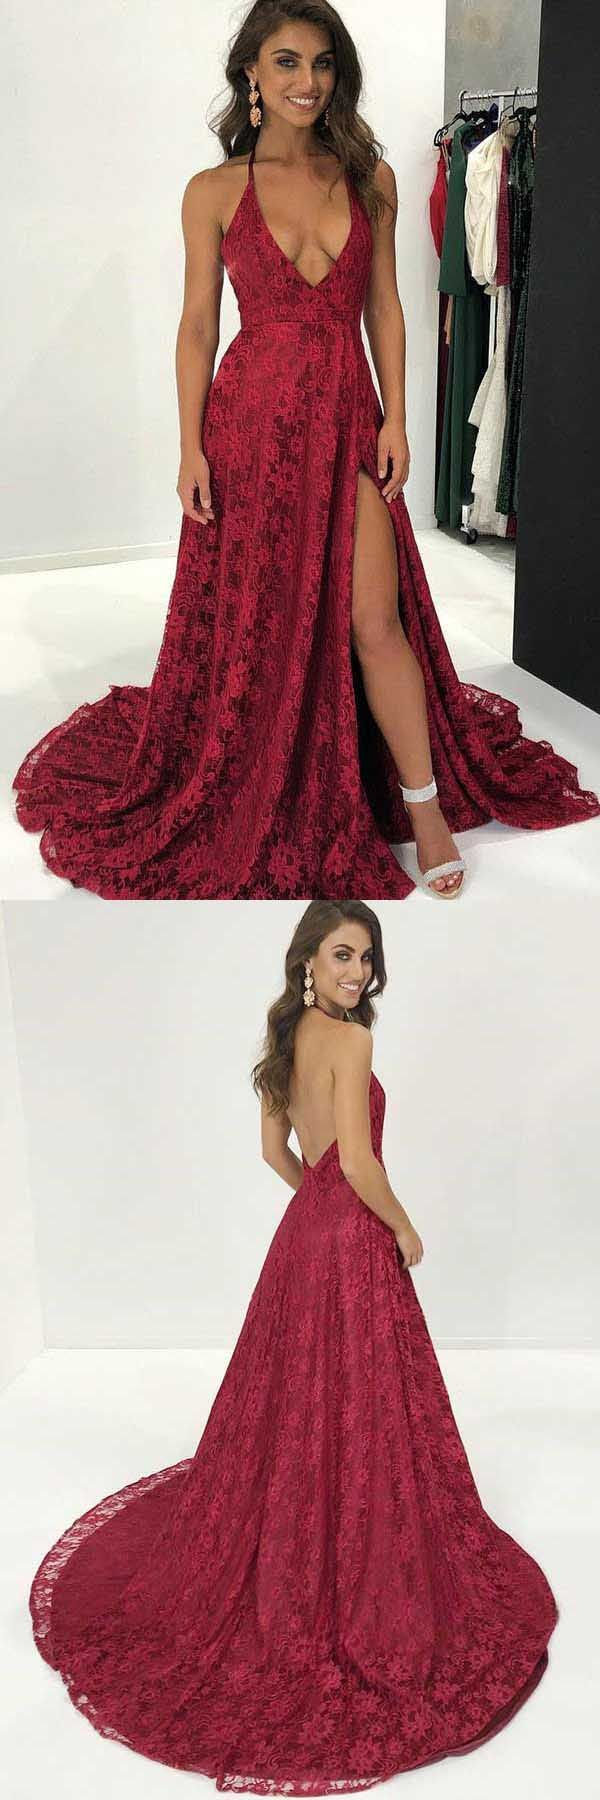 Aline halter sweep train red lace prom dress with split pg